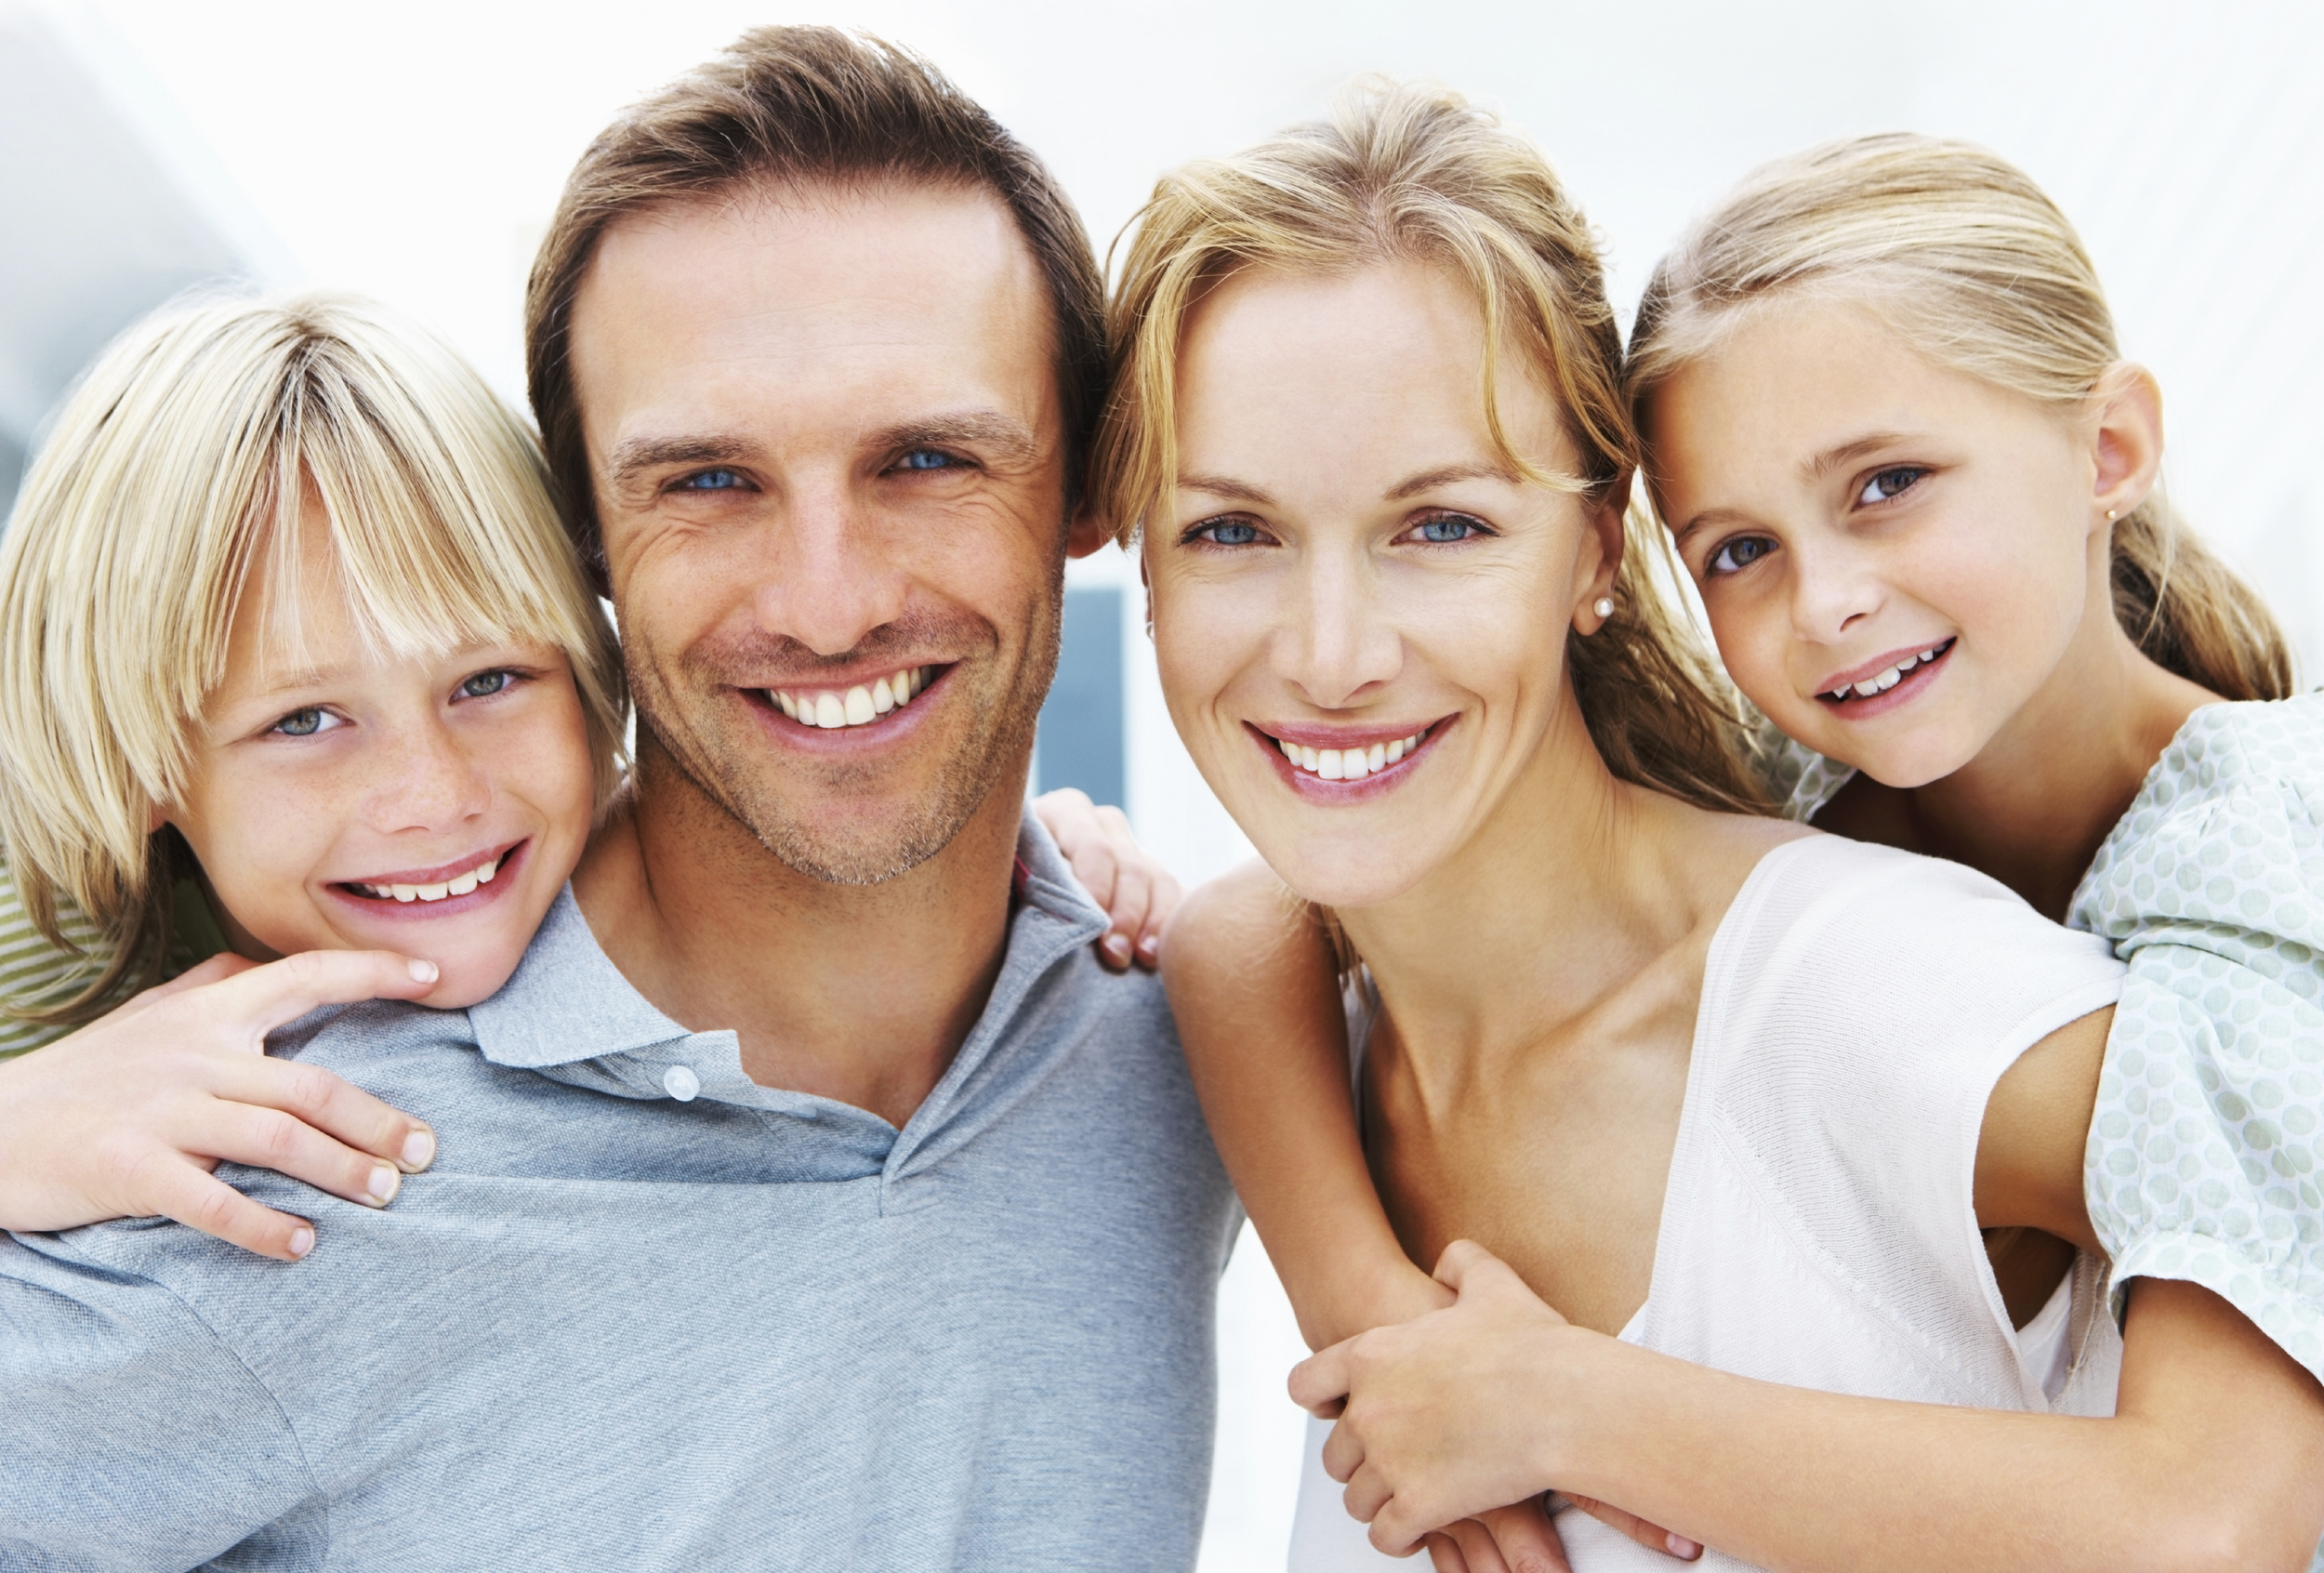 Hughes Dental Group provides dentistry services for the whole family.